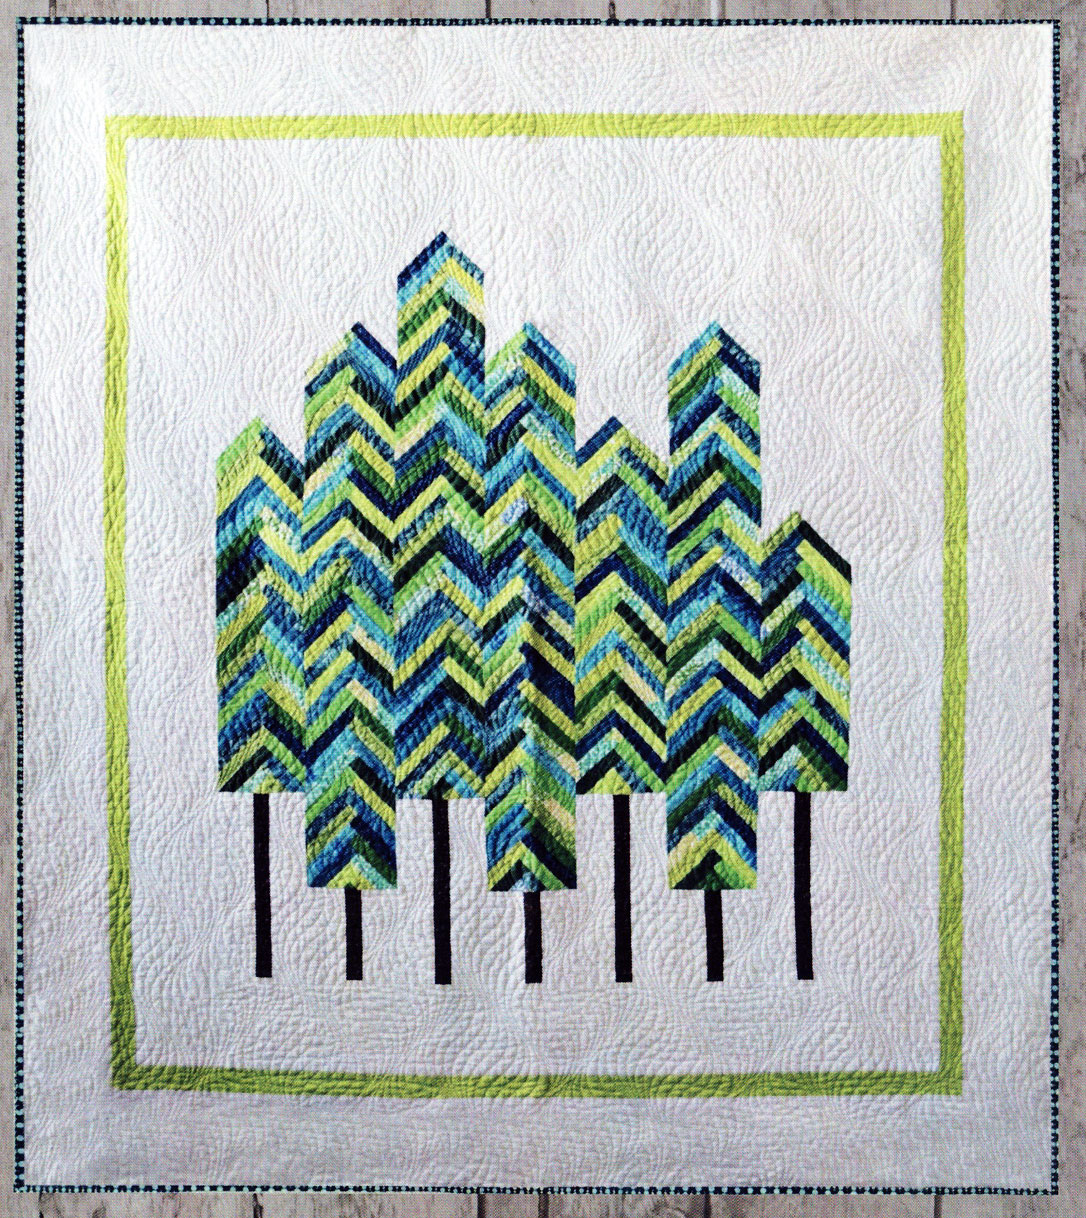 into-the-woods-quilt-sewing-pattern-Kelli-Fannin-Quilt-Designs-1